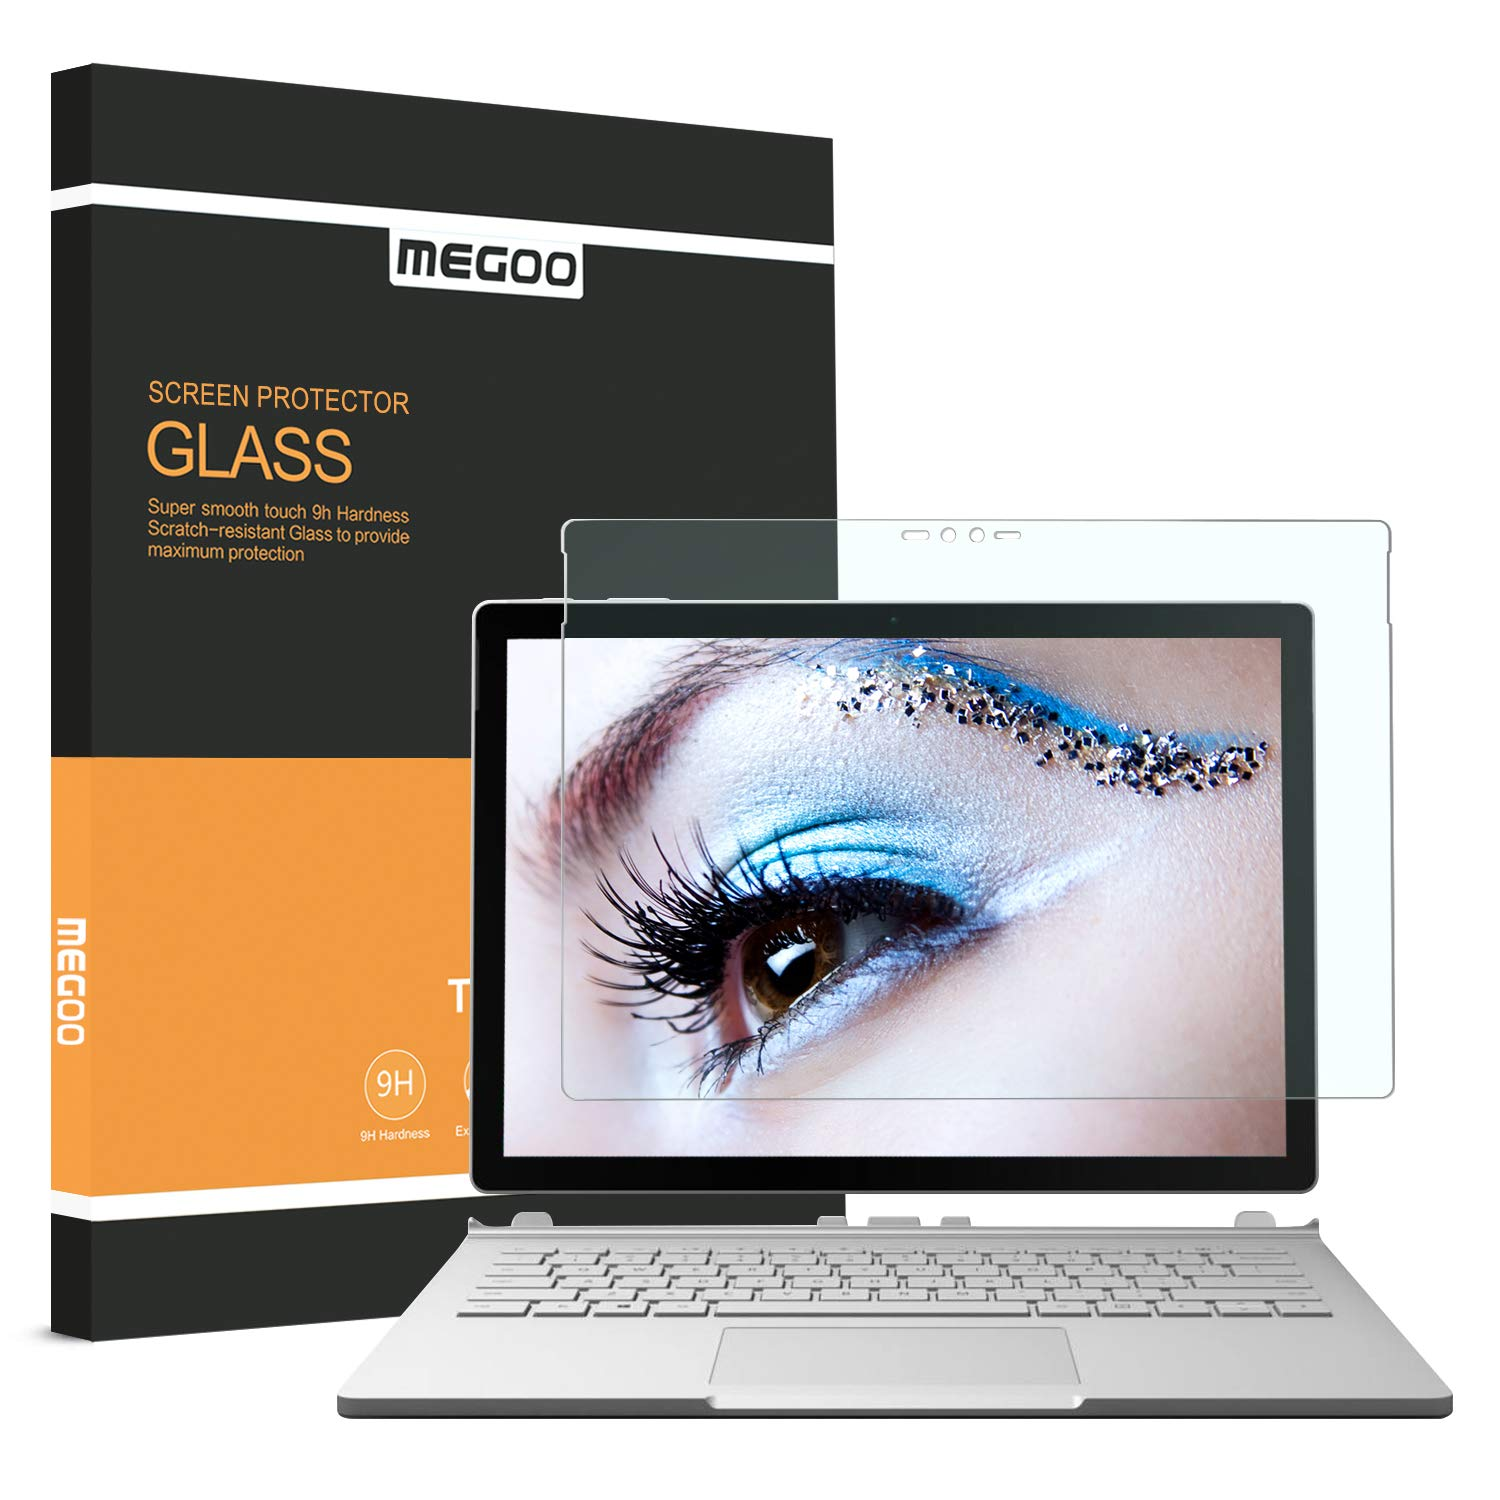 MEGOO Surface Book Screen Protector, [Blue Light Blocking] Protect Eyesight Tempered Glass Screen Protector (Updated Version 2017) Also for Microsoft Surface Book 2 (13.5 Inch)